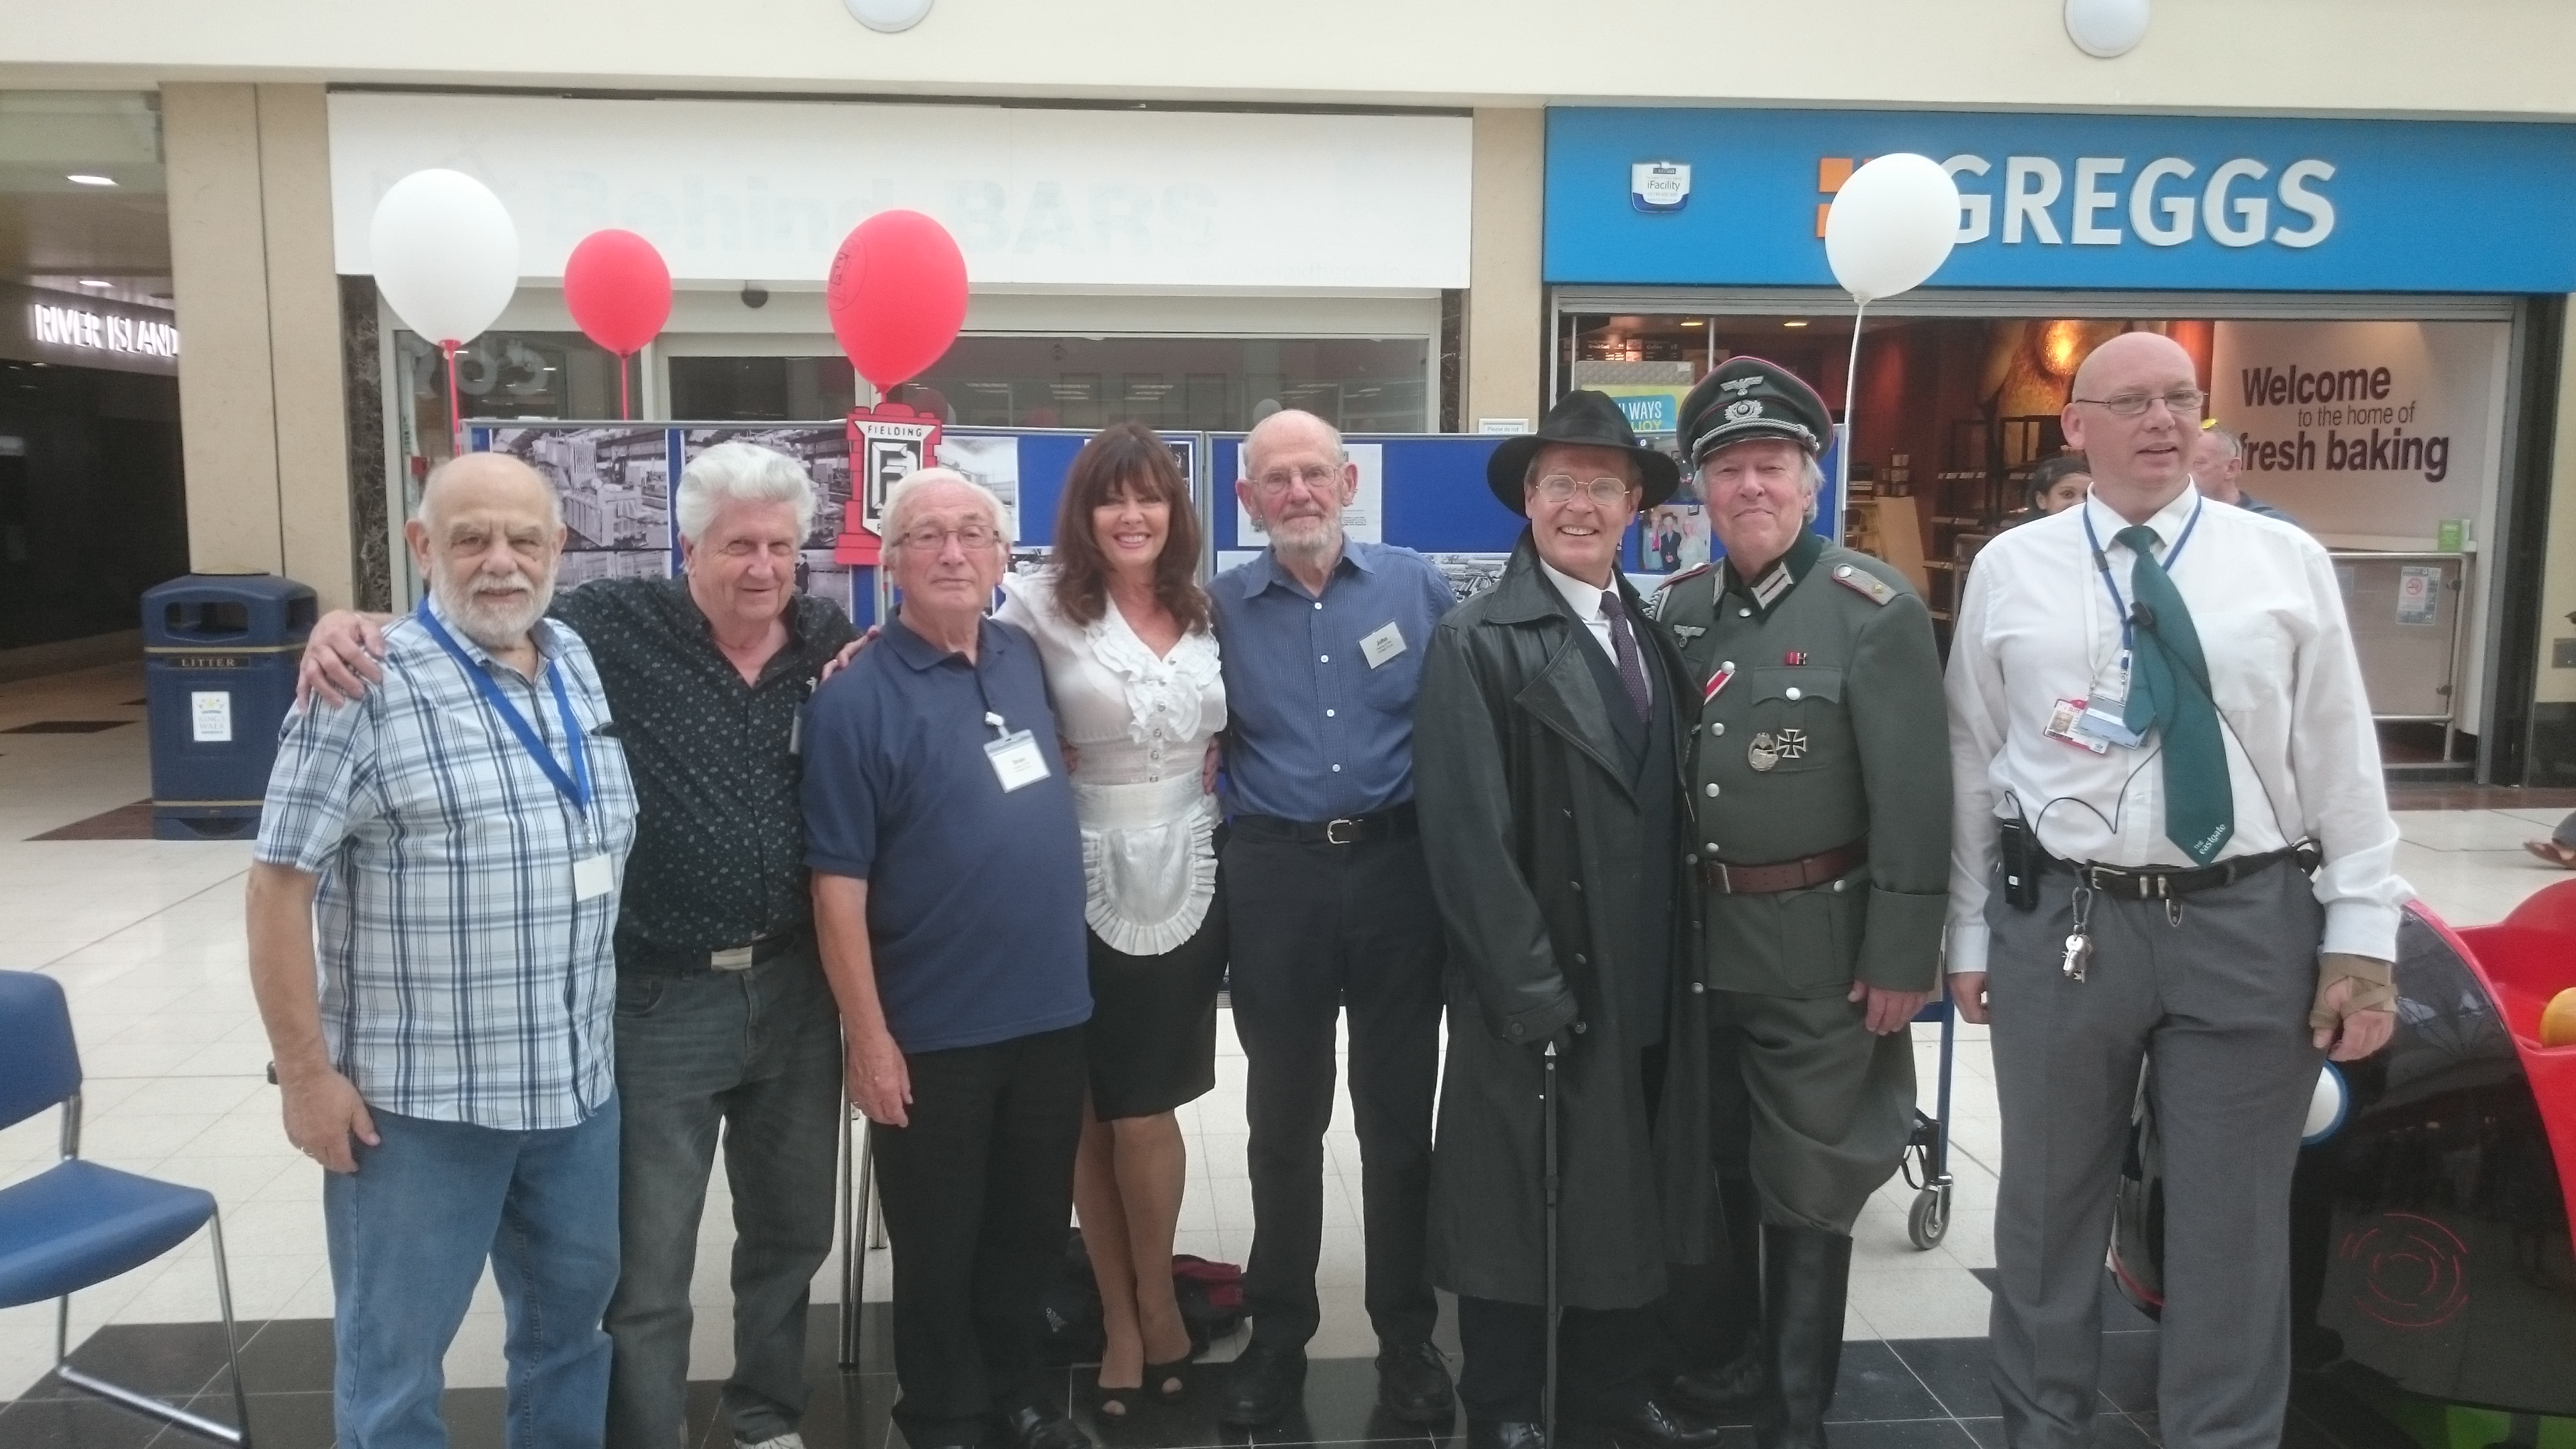 Image from Retro Day 2017: Members of the Fielding & Platt Heritage Group meet some famous faces